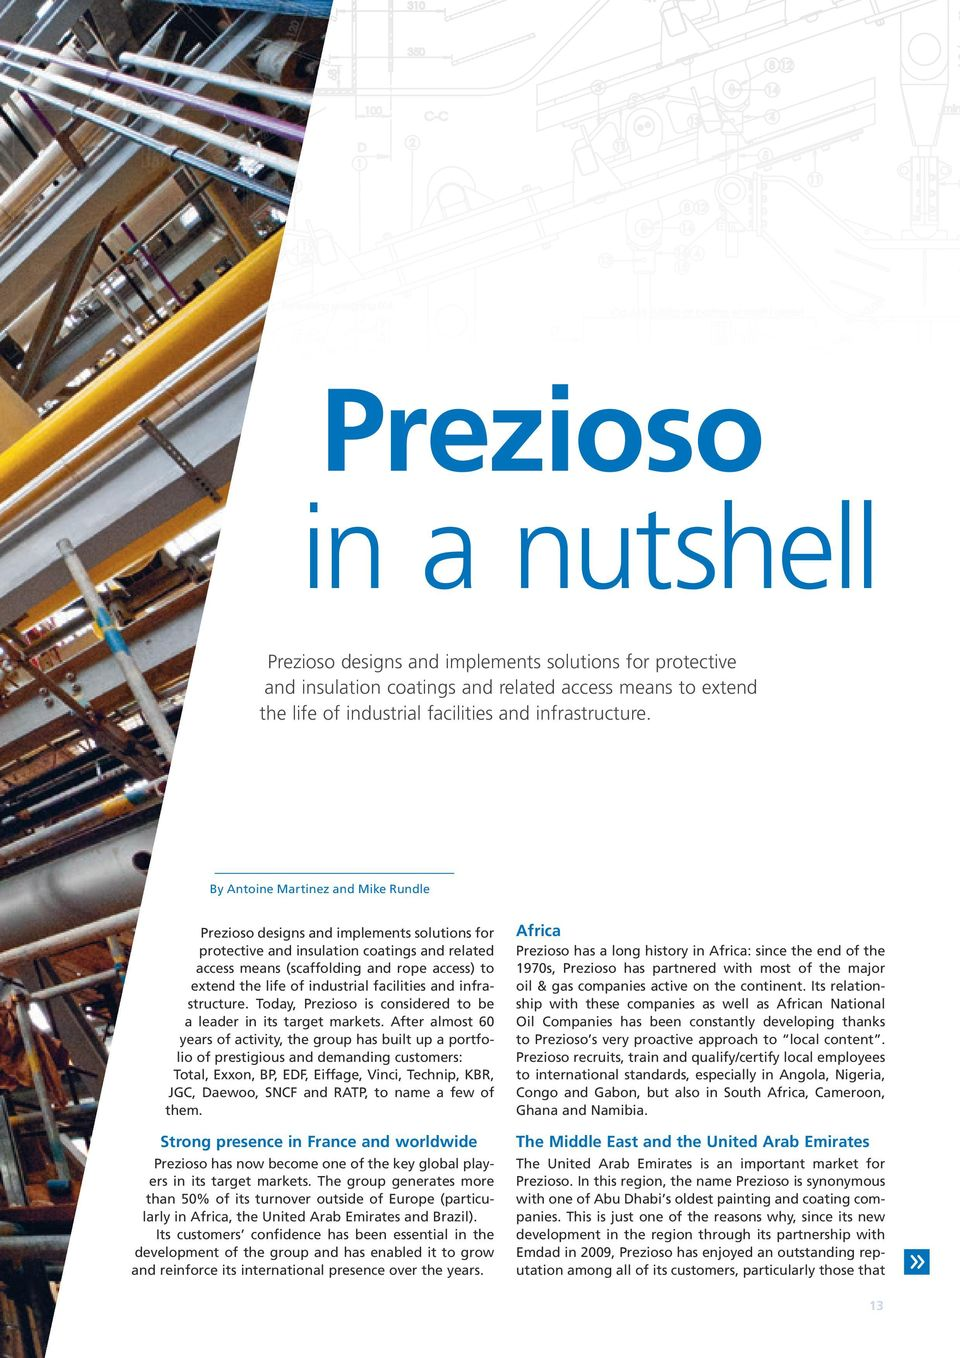 industrial facilities and infrastructure. Today, Prezioso is considered to be a leader in its target markets.